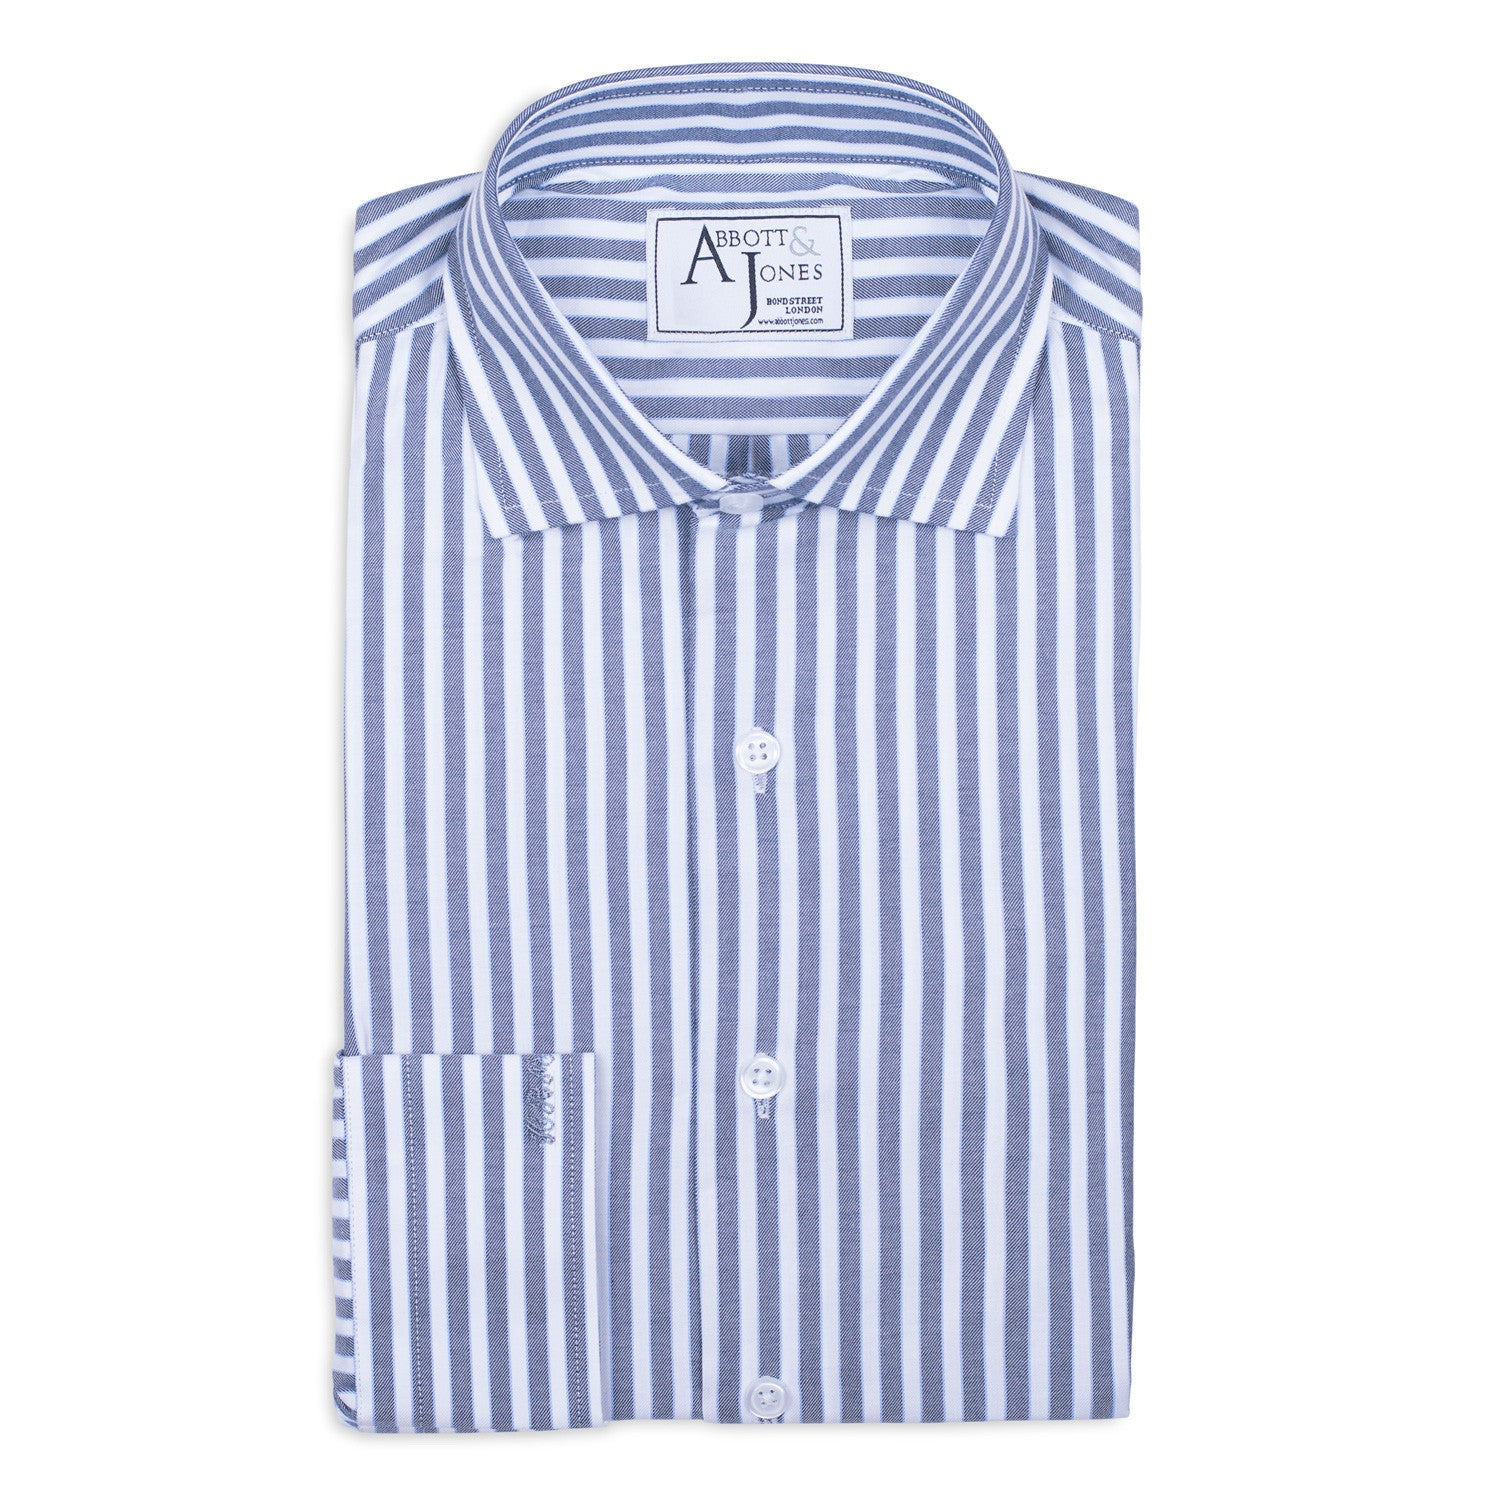 Grey Striped Bespoke Shirt